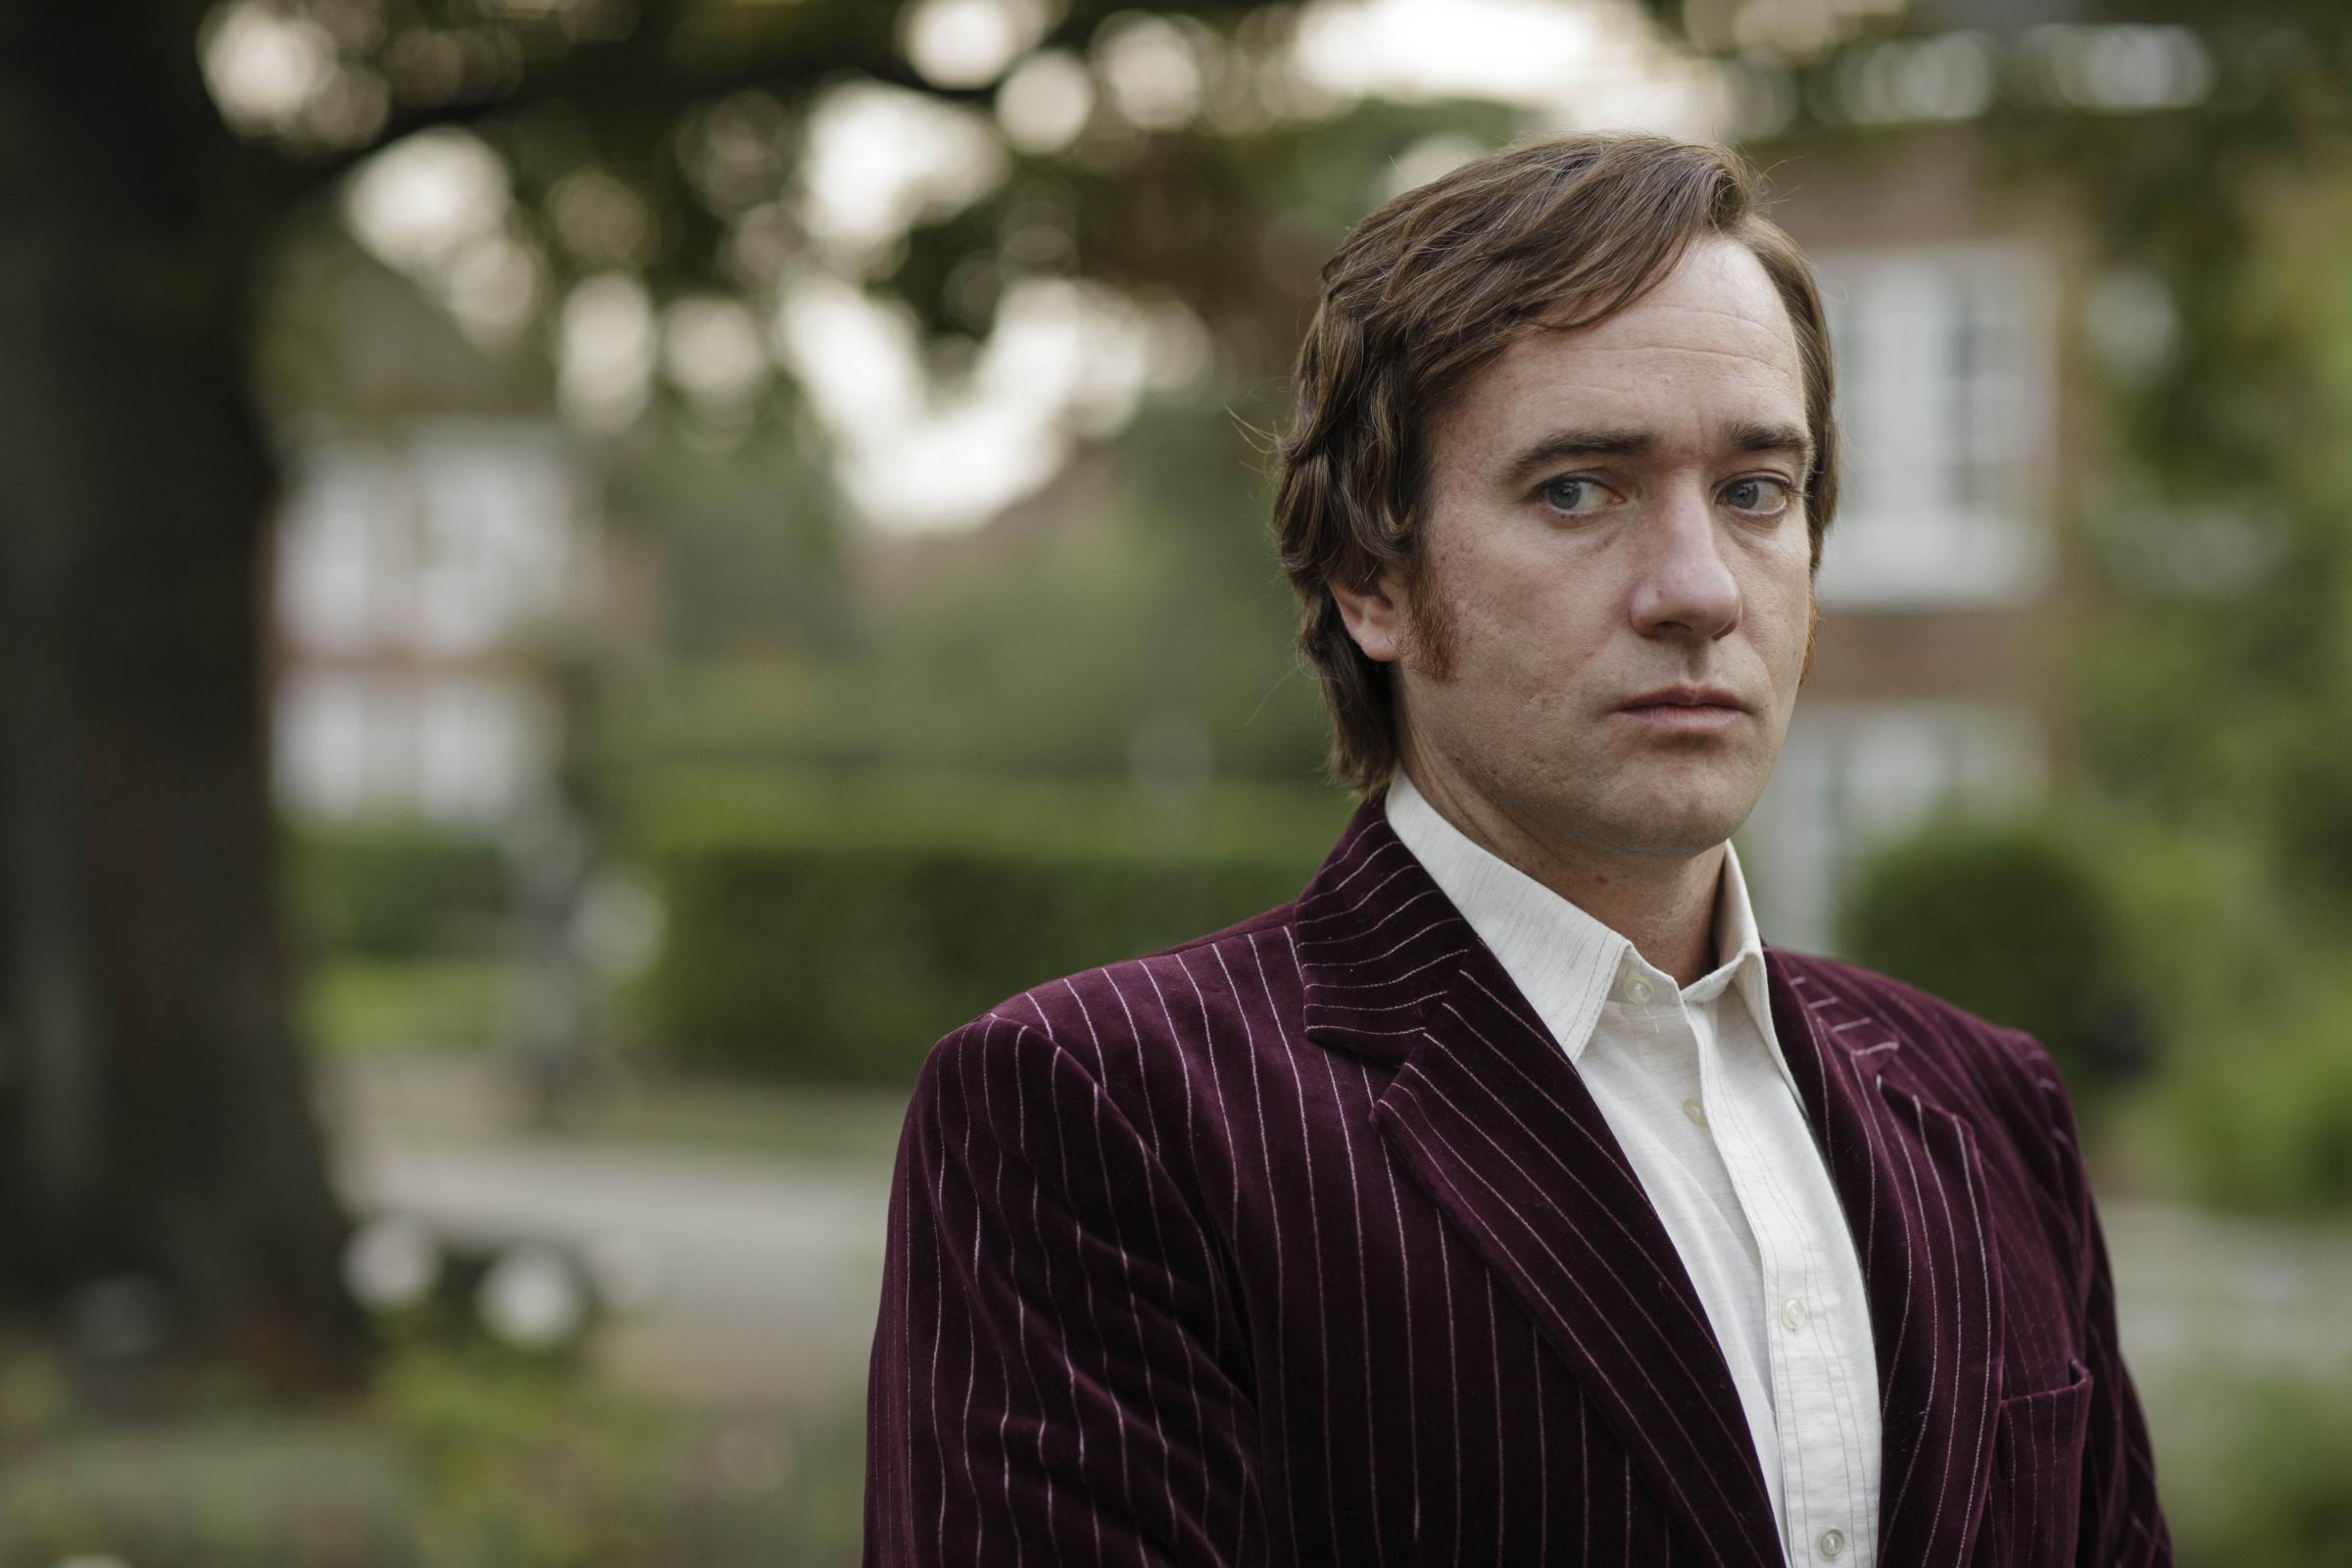 Star of The Enfield Haunting Matthew Macfadyen says he has an open mind about poltergeists